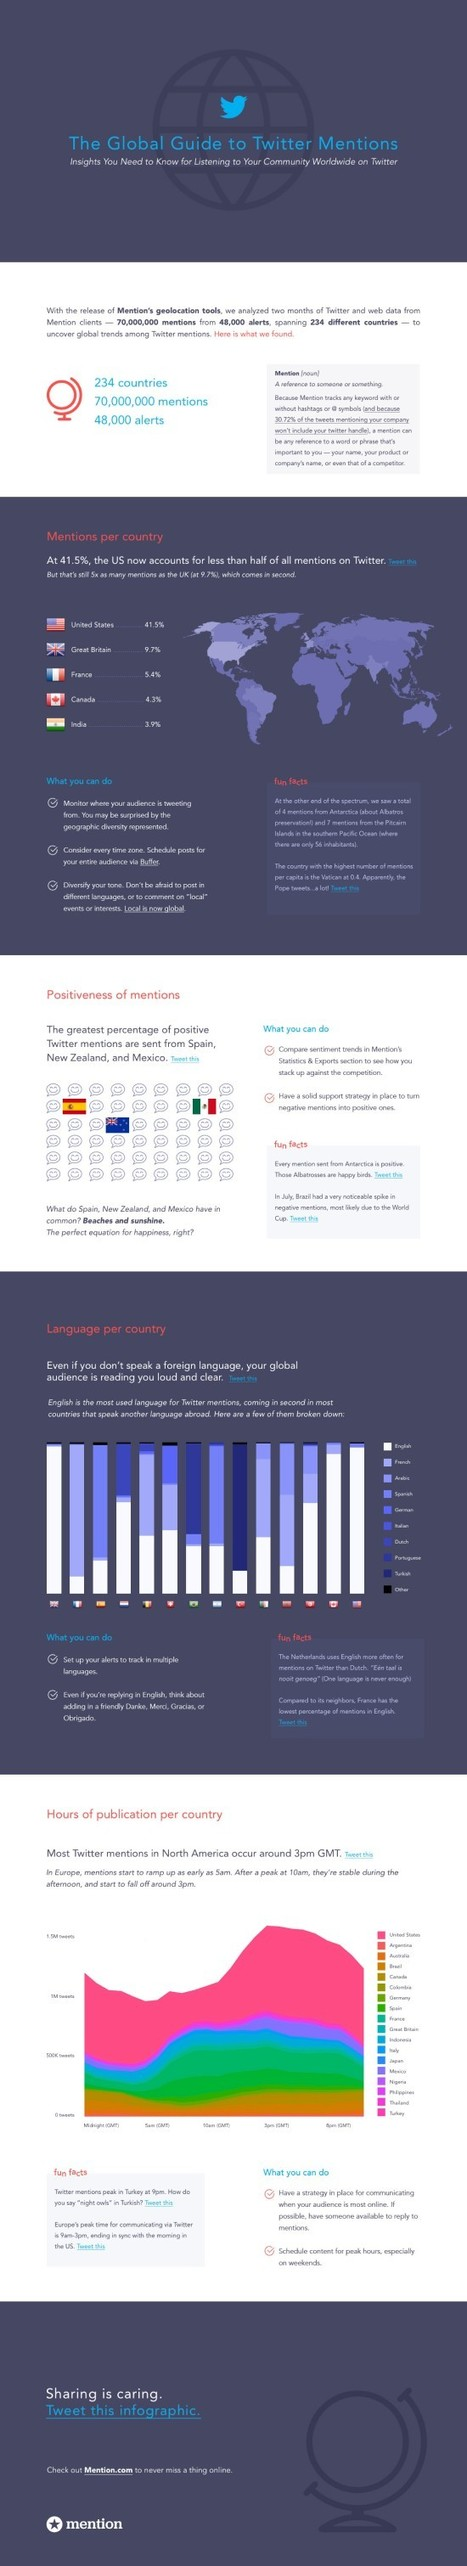 Infographie : les mentions Twitter en chiffres | Learning 2.0 ! | Scoop.it